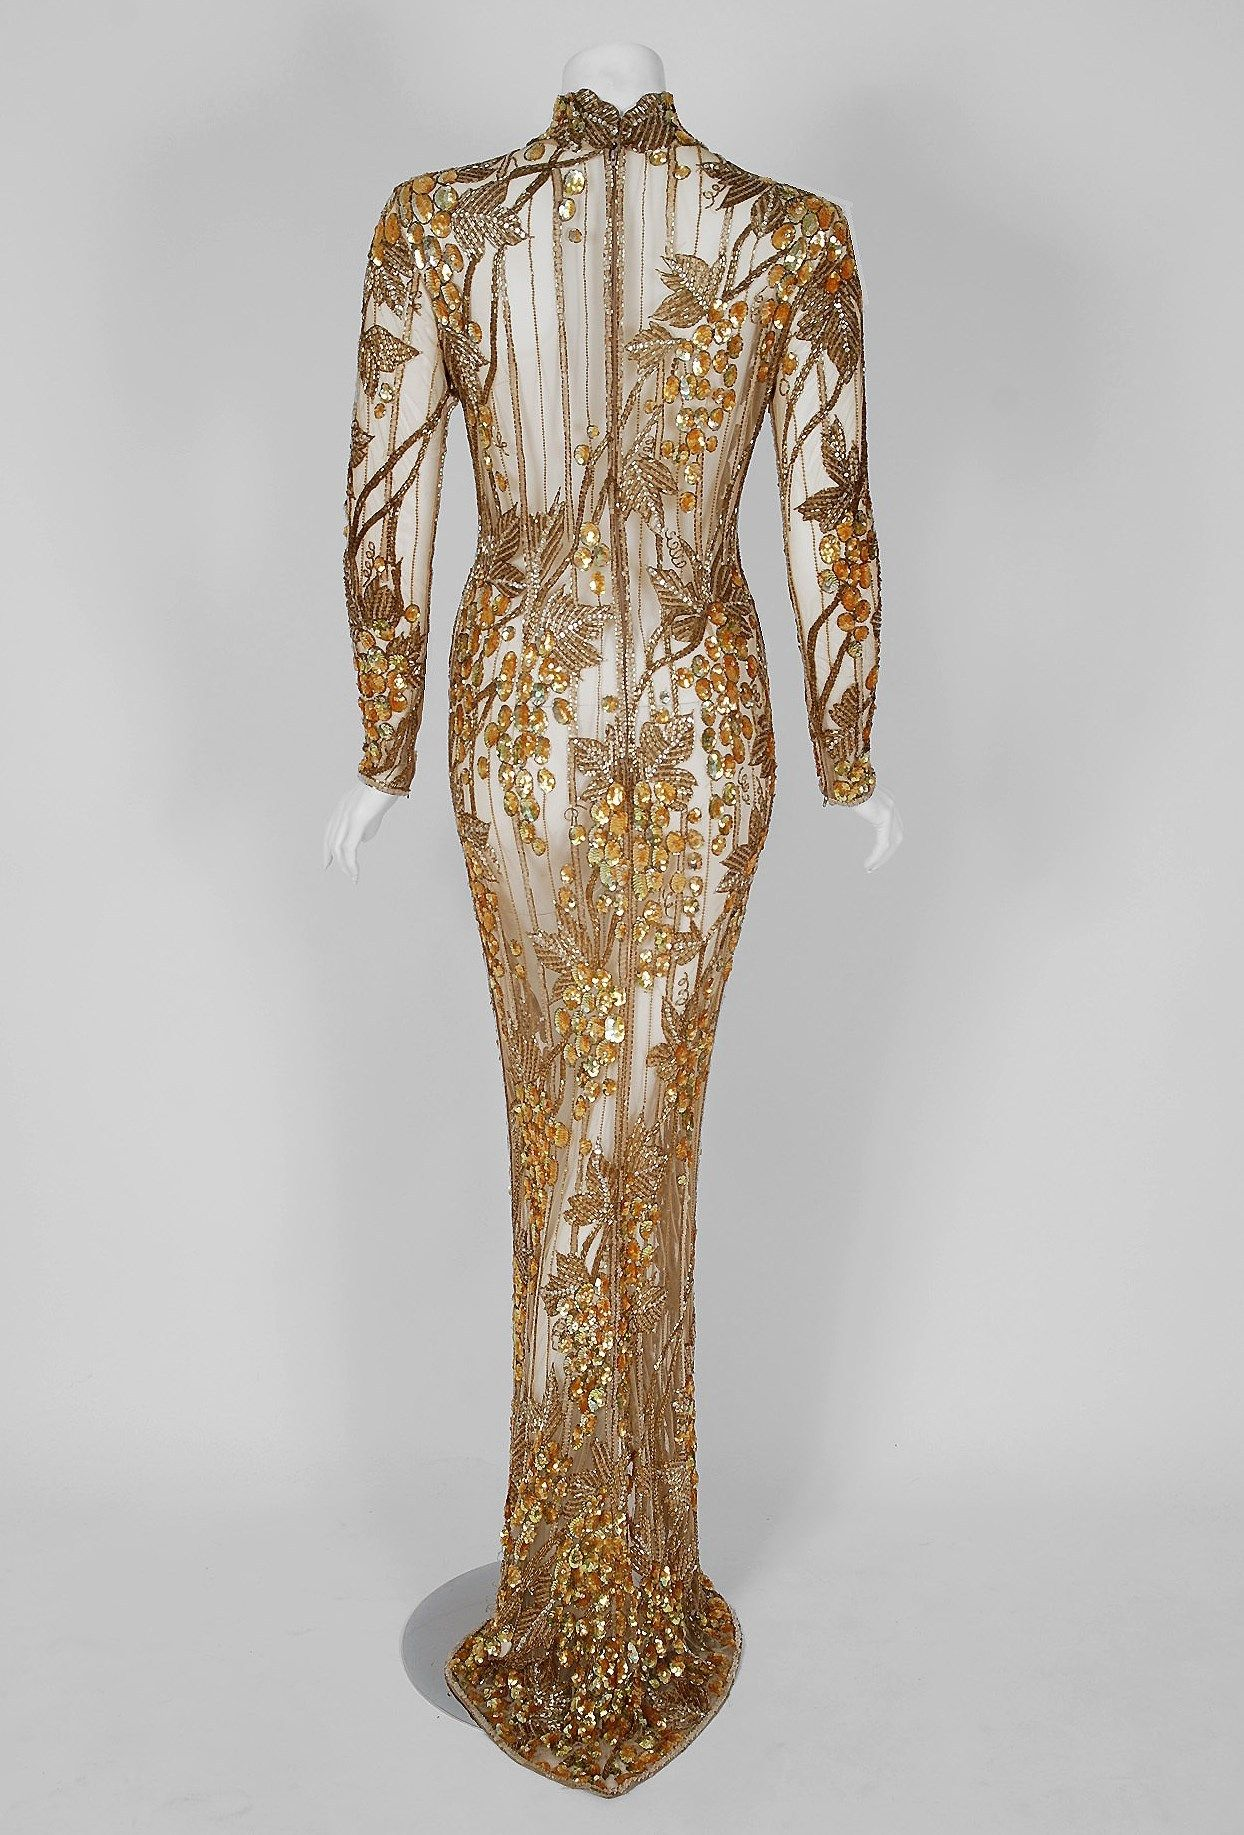 98840b94 1995 Iconic Sharon Stone Casino Gold Sequin Beaded Illusion Gown By Bob  Mackie Fashioned in a seductive nude embroidered net, the beaded and sequin  ...